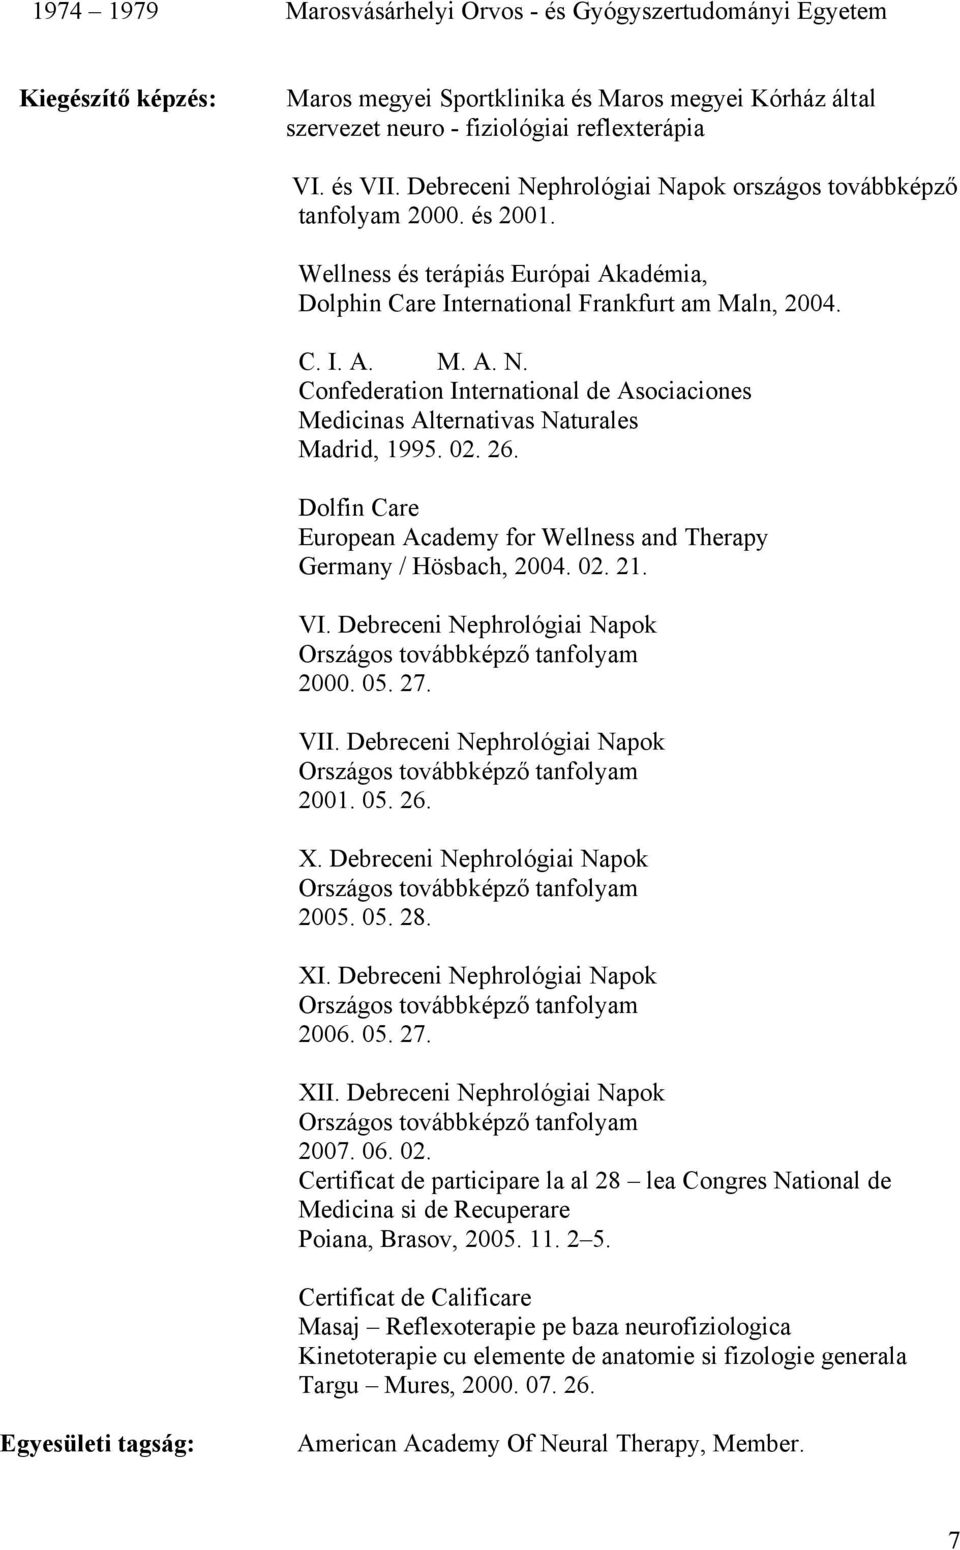 02. 26. Dolfin Care European Academy for Wellness and Therapy Germany / Hösbach, 2004. 02. 21. VI. Debreceni Nephrológiai Napok 2000. 05. 27. VII. Debreceni Nephrológiai Napok 2001. 05. 26. X.